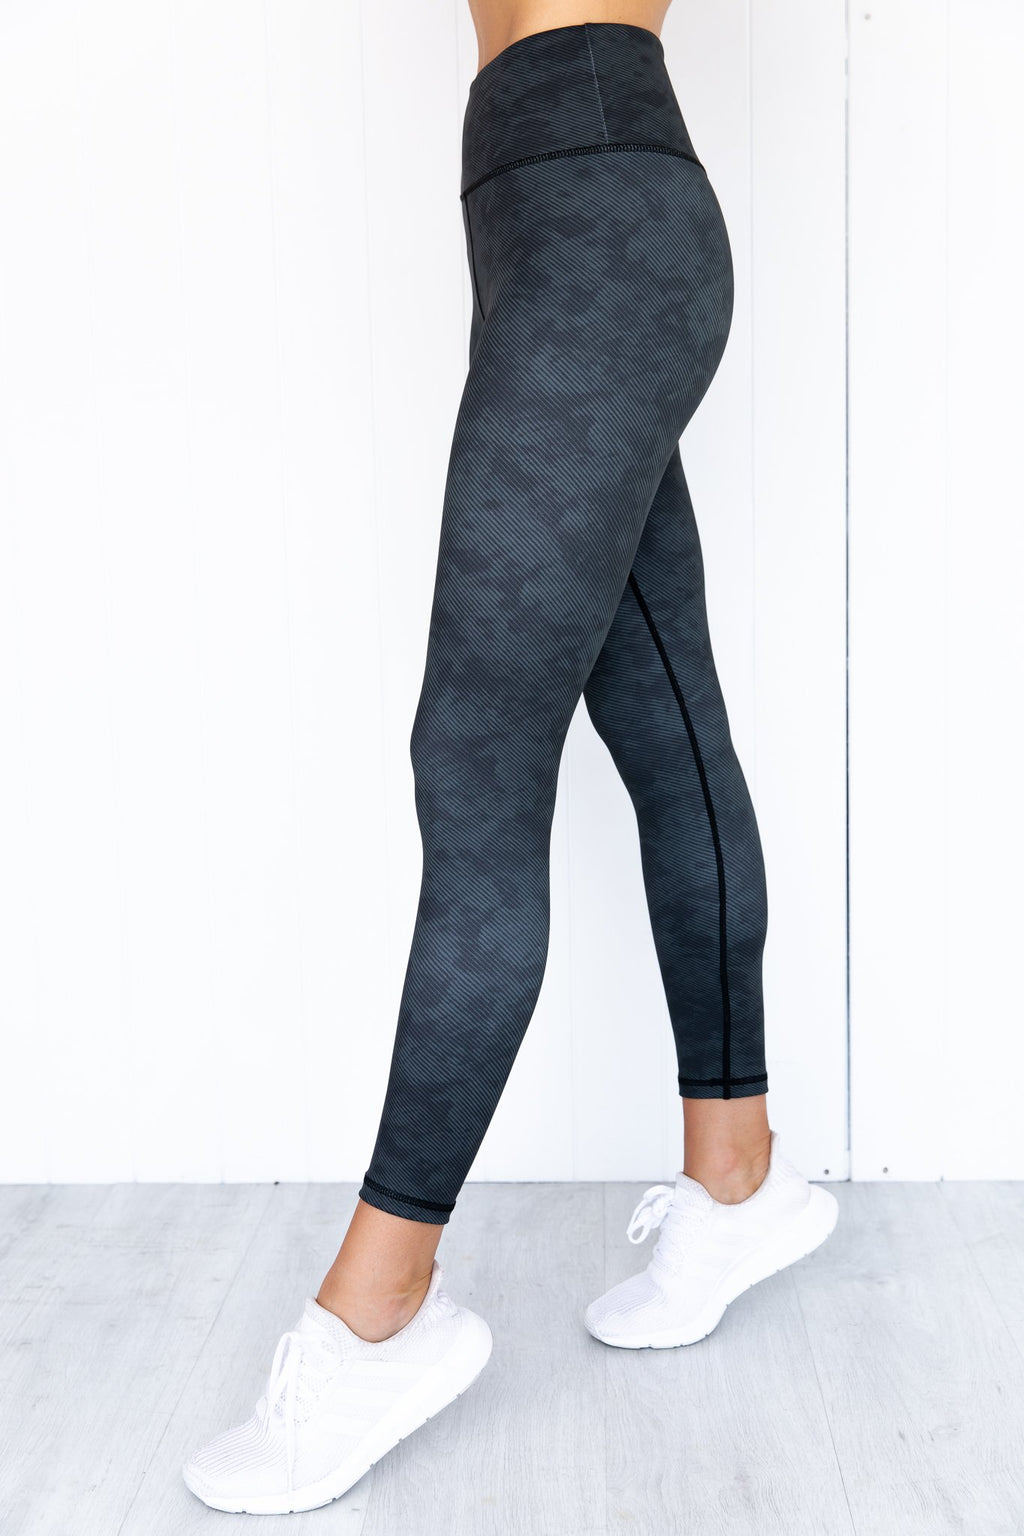 Illinois Legging - Black